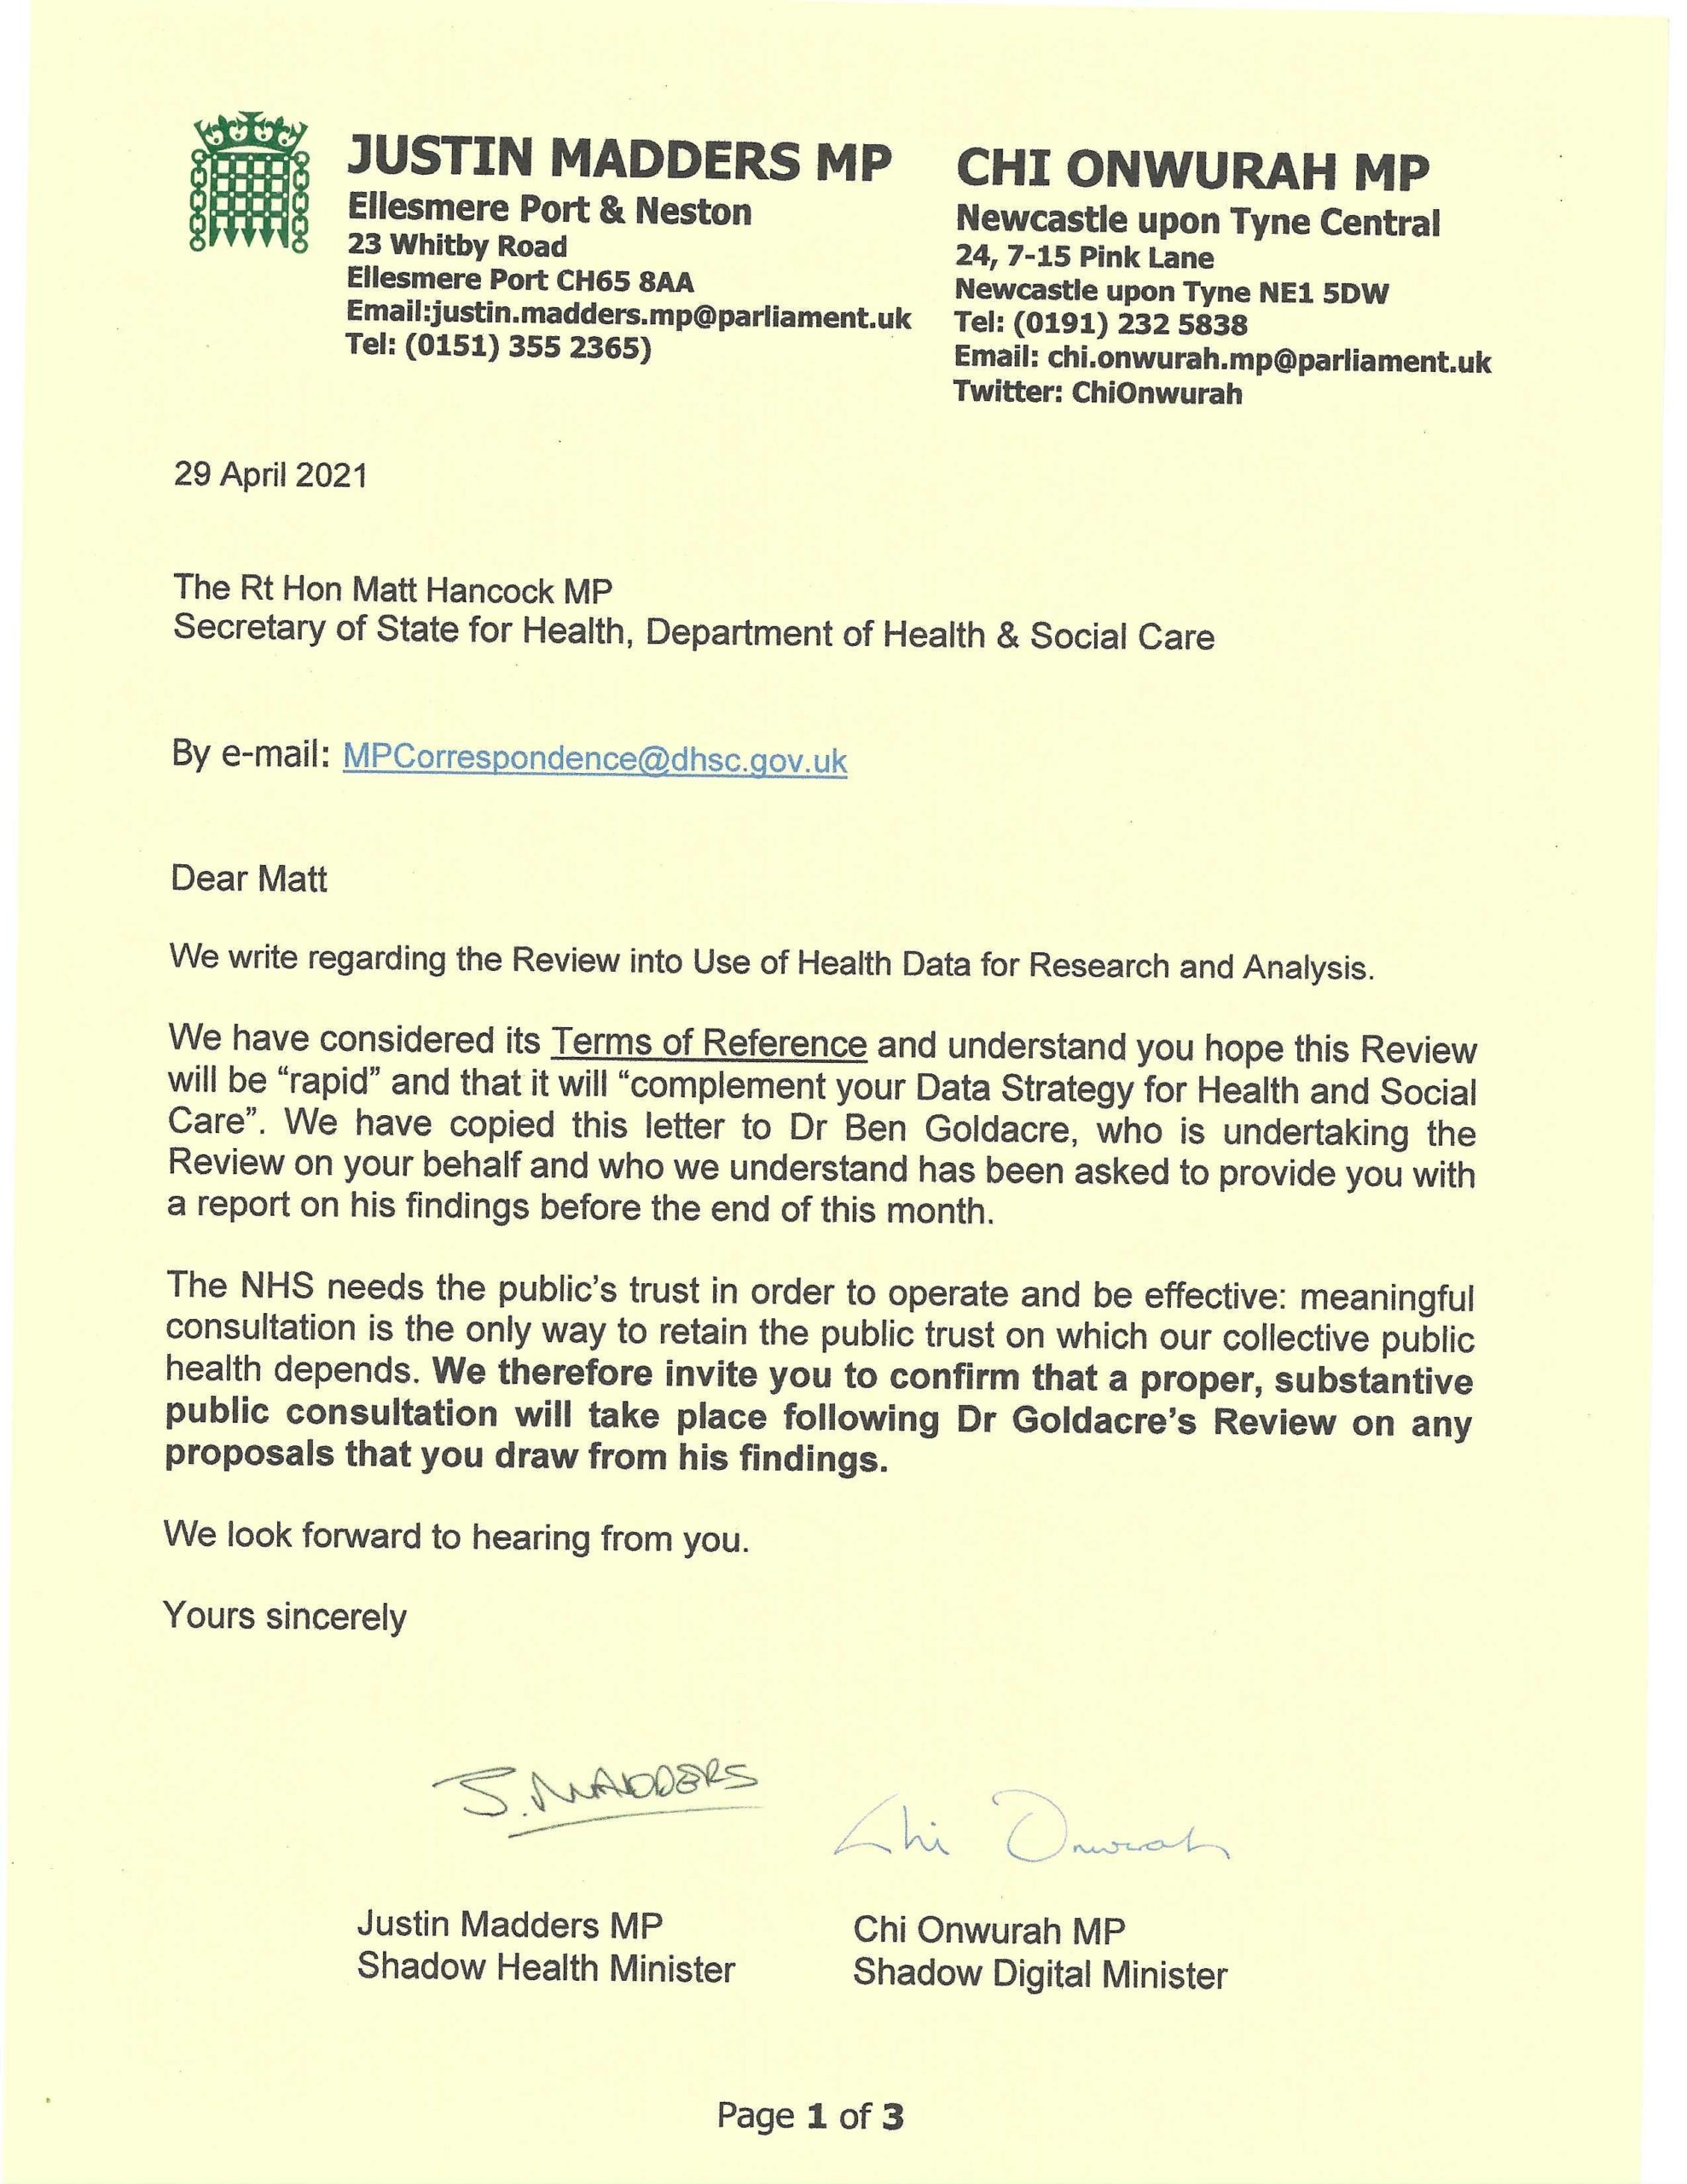 Chi and Justin Madders MP write to the Health Secretary  to ensure public consultation over the use of health data